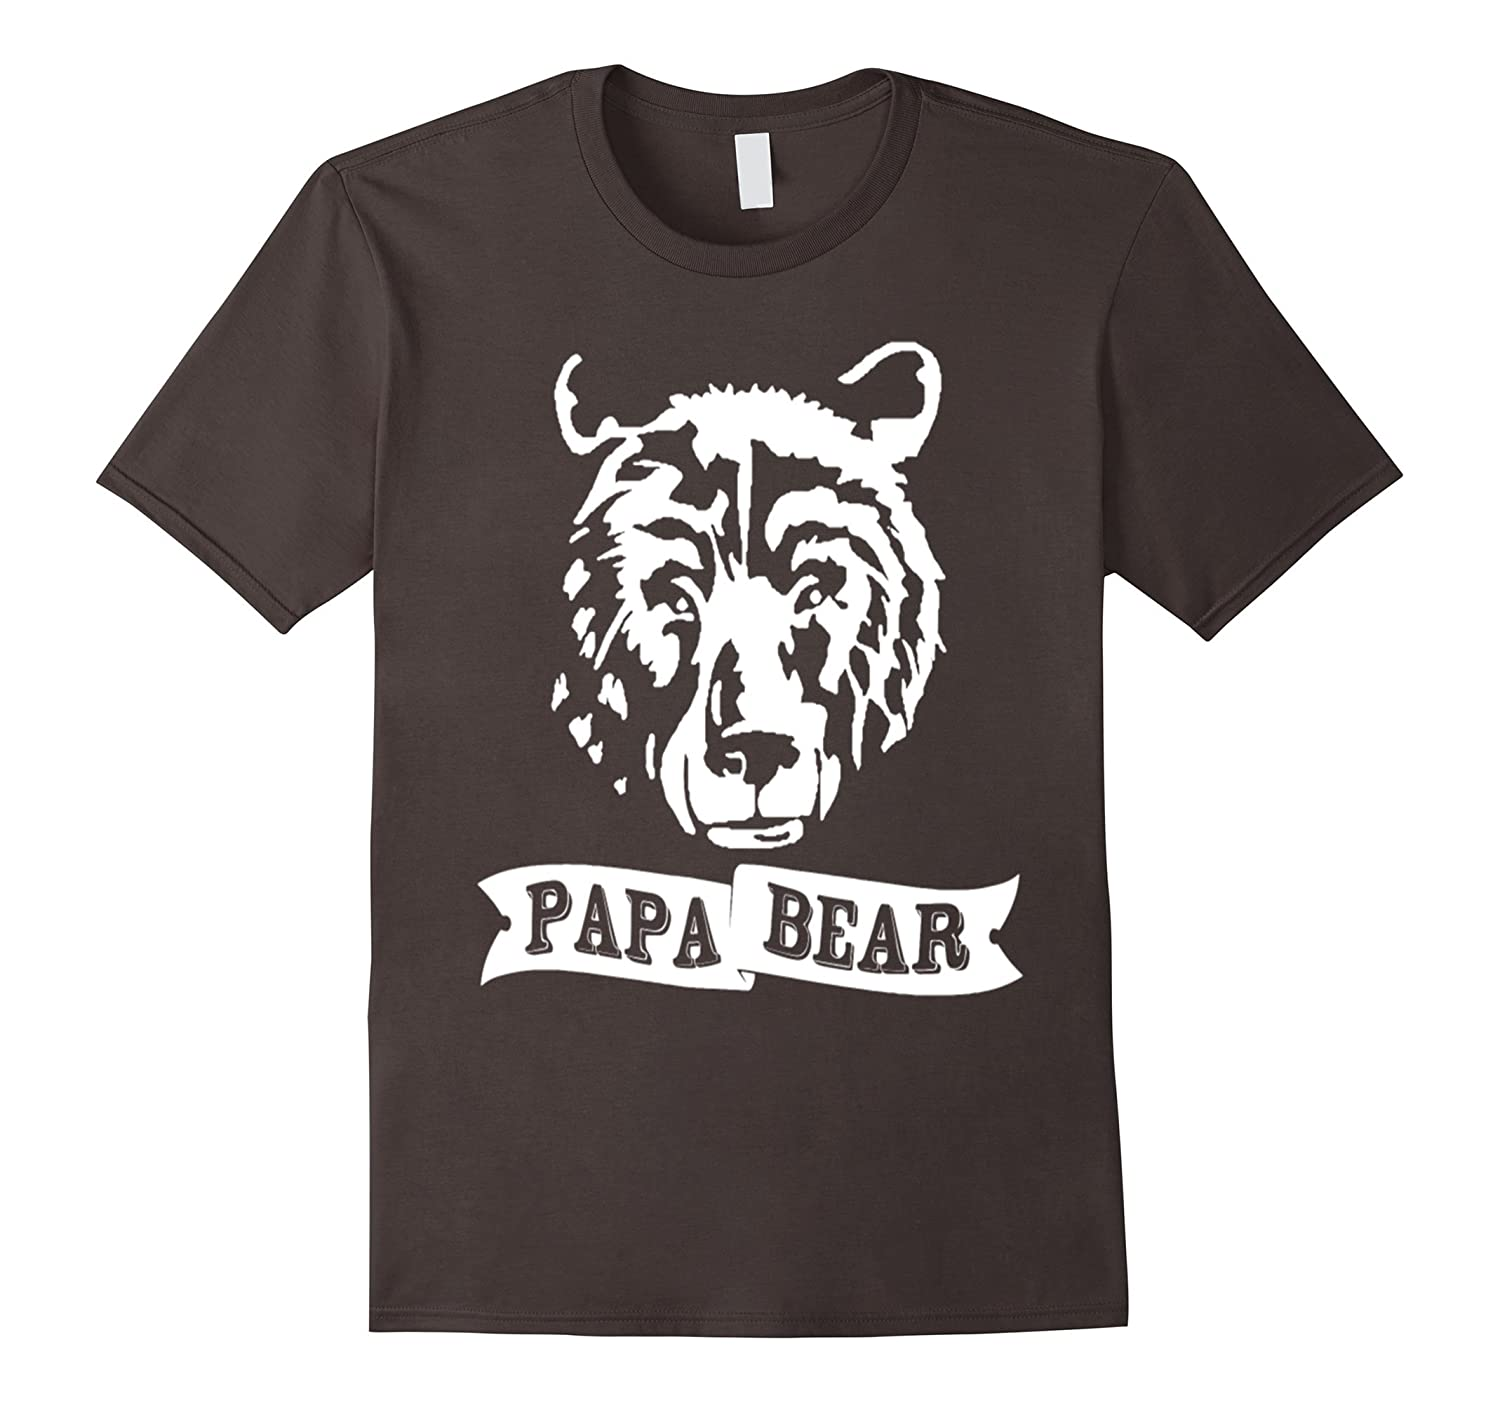 papa bear mama bear gay pride usa flag lgbt t shirts-CD